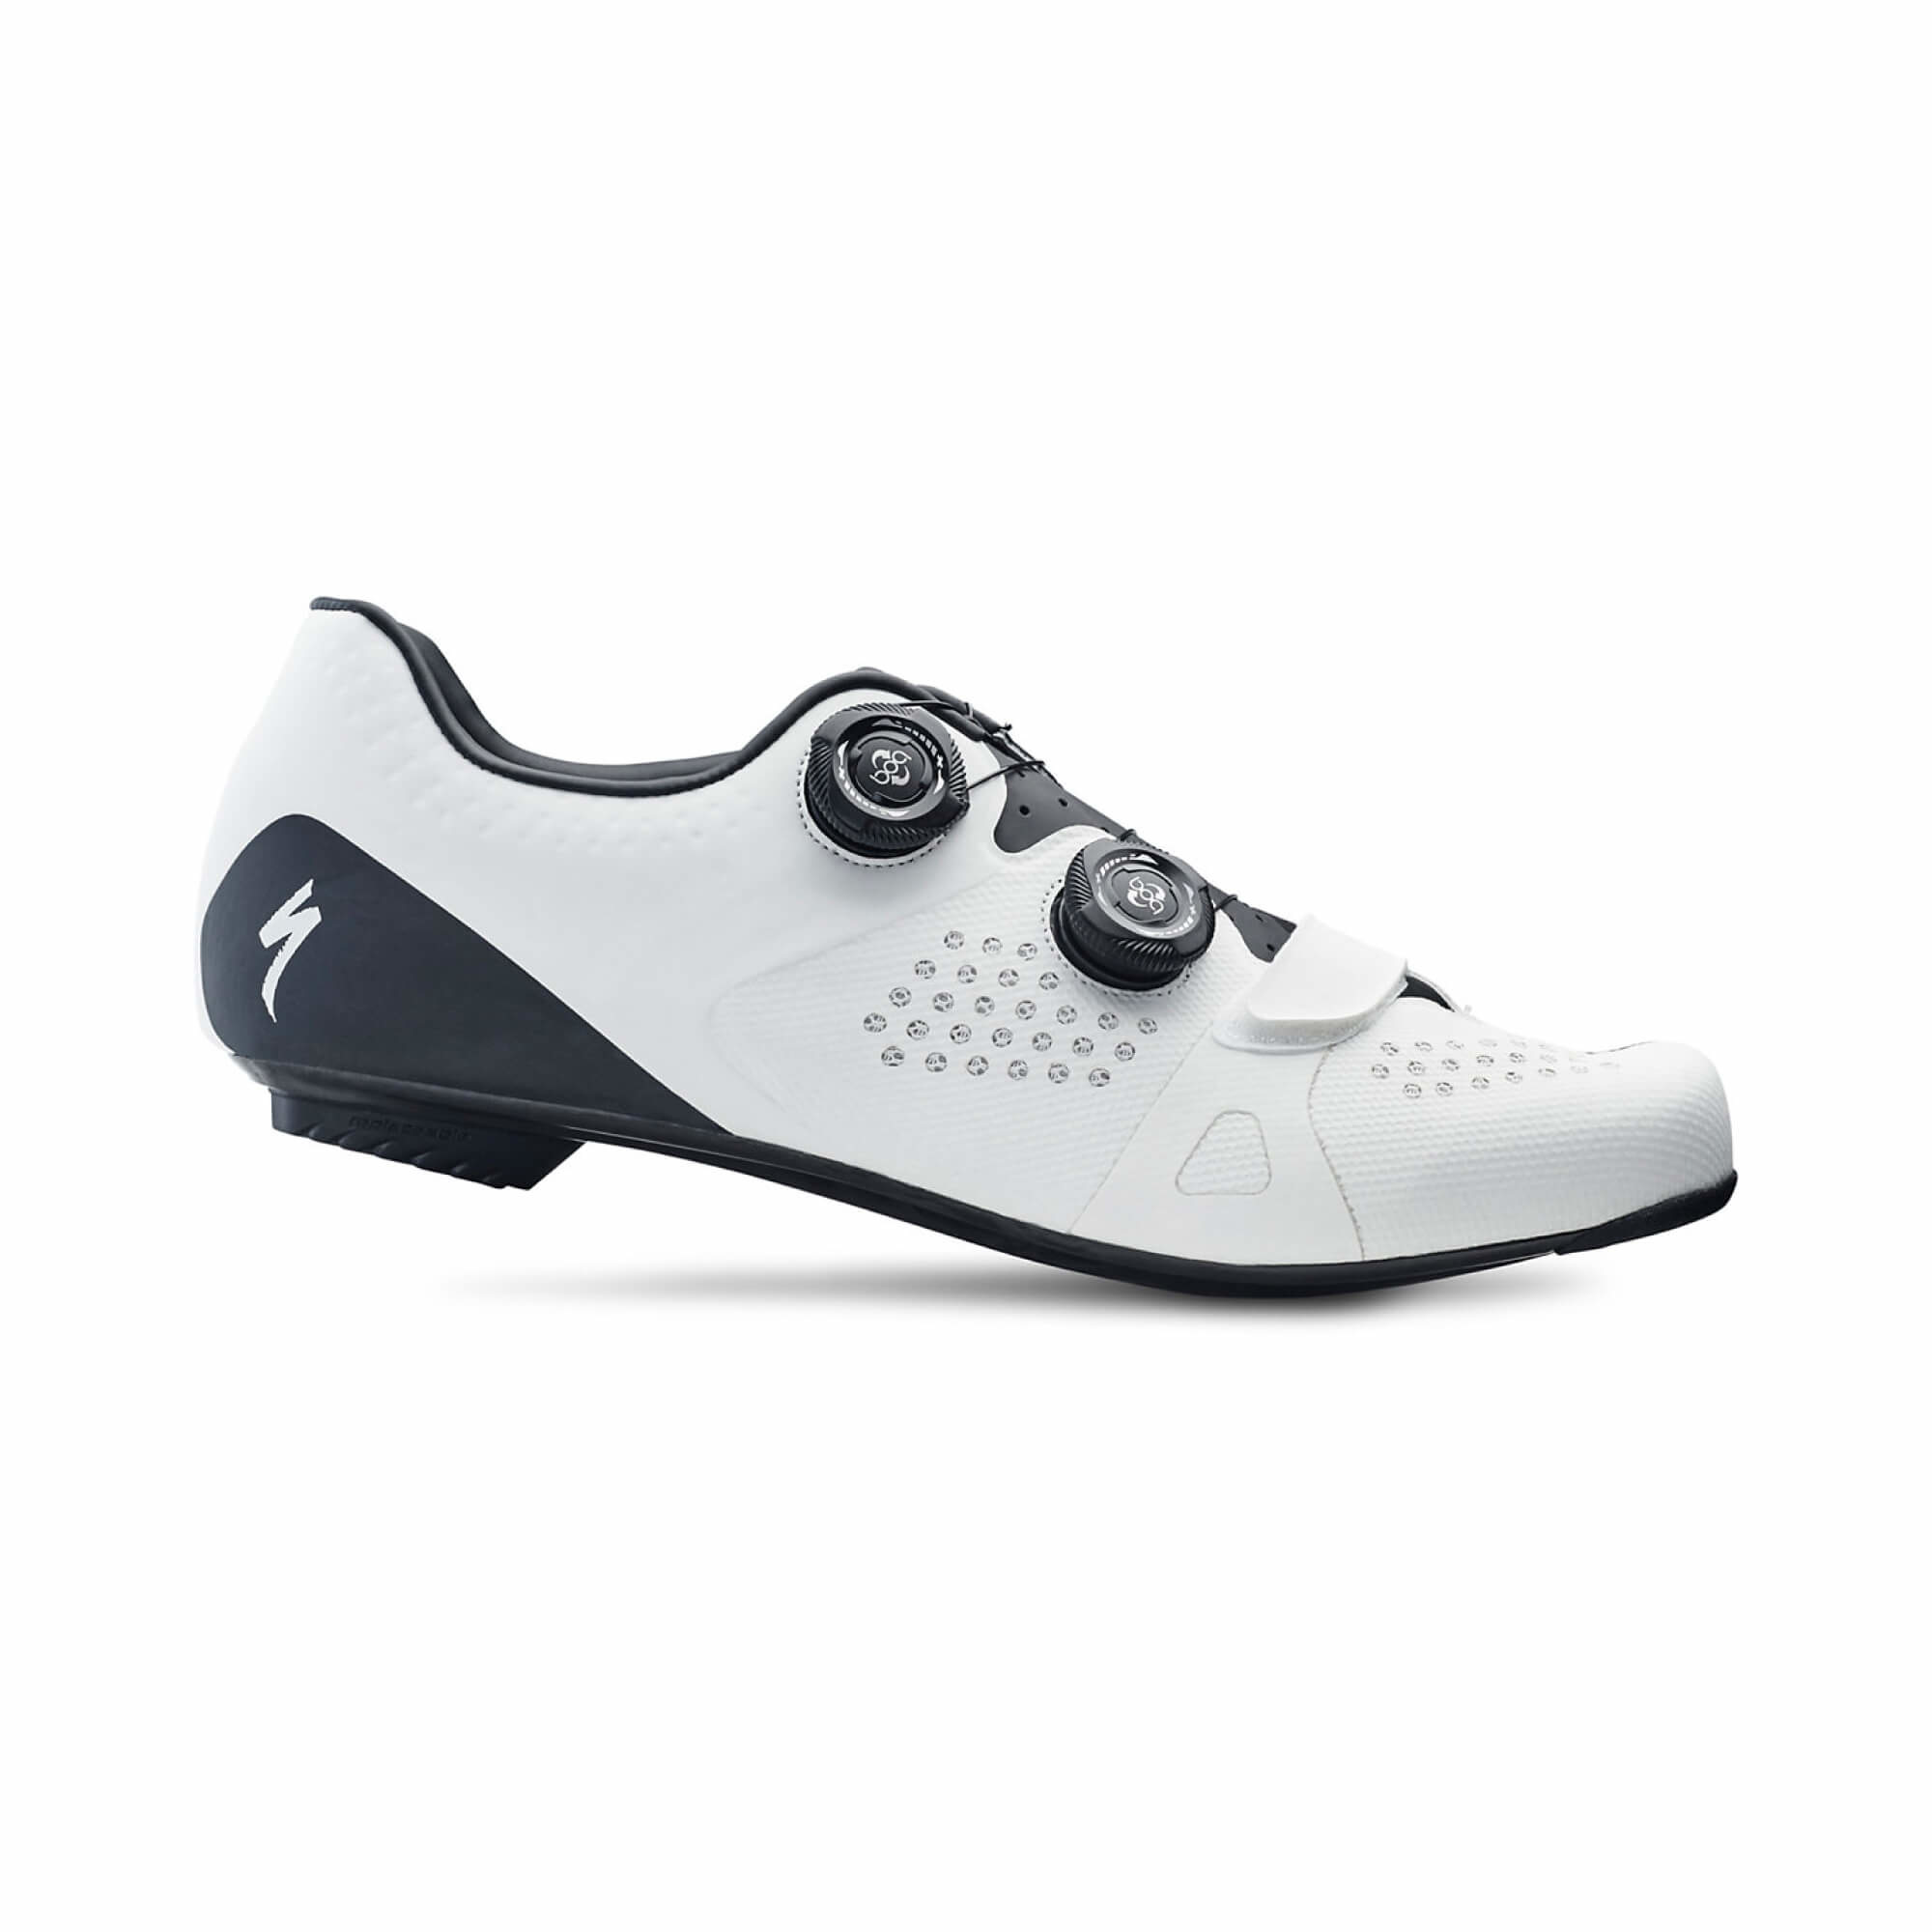 Torch 3.0 Road Shoe-5